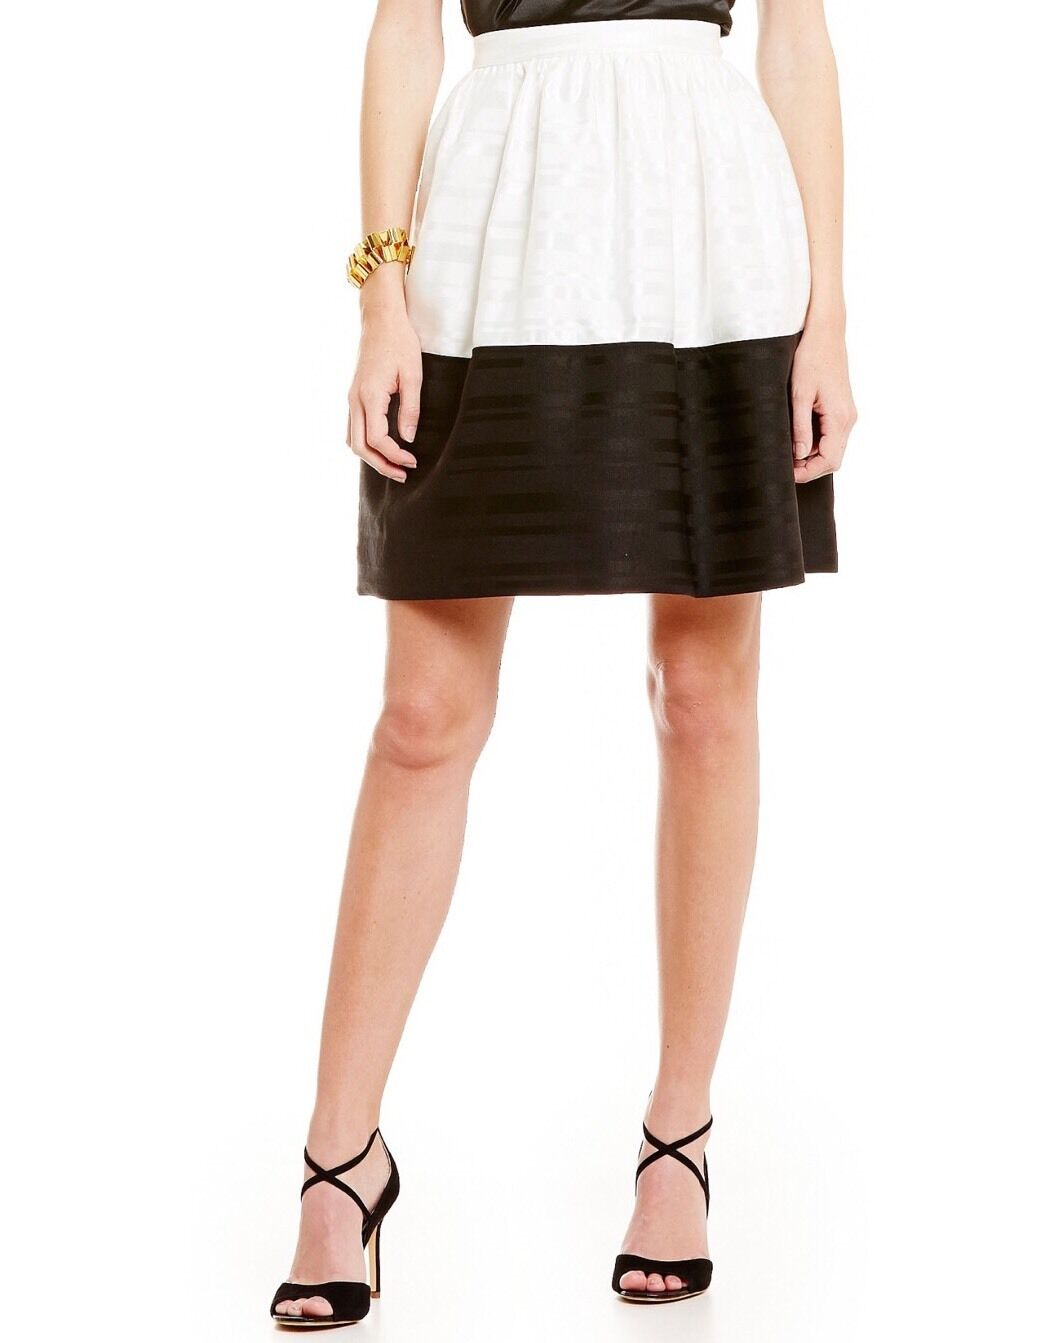 Anthropologie Kennedy Skirt Size 0 by Erin Fetherston